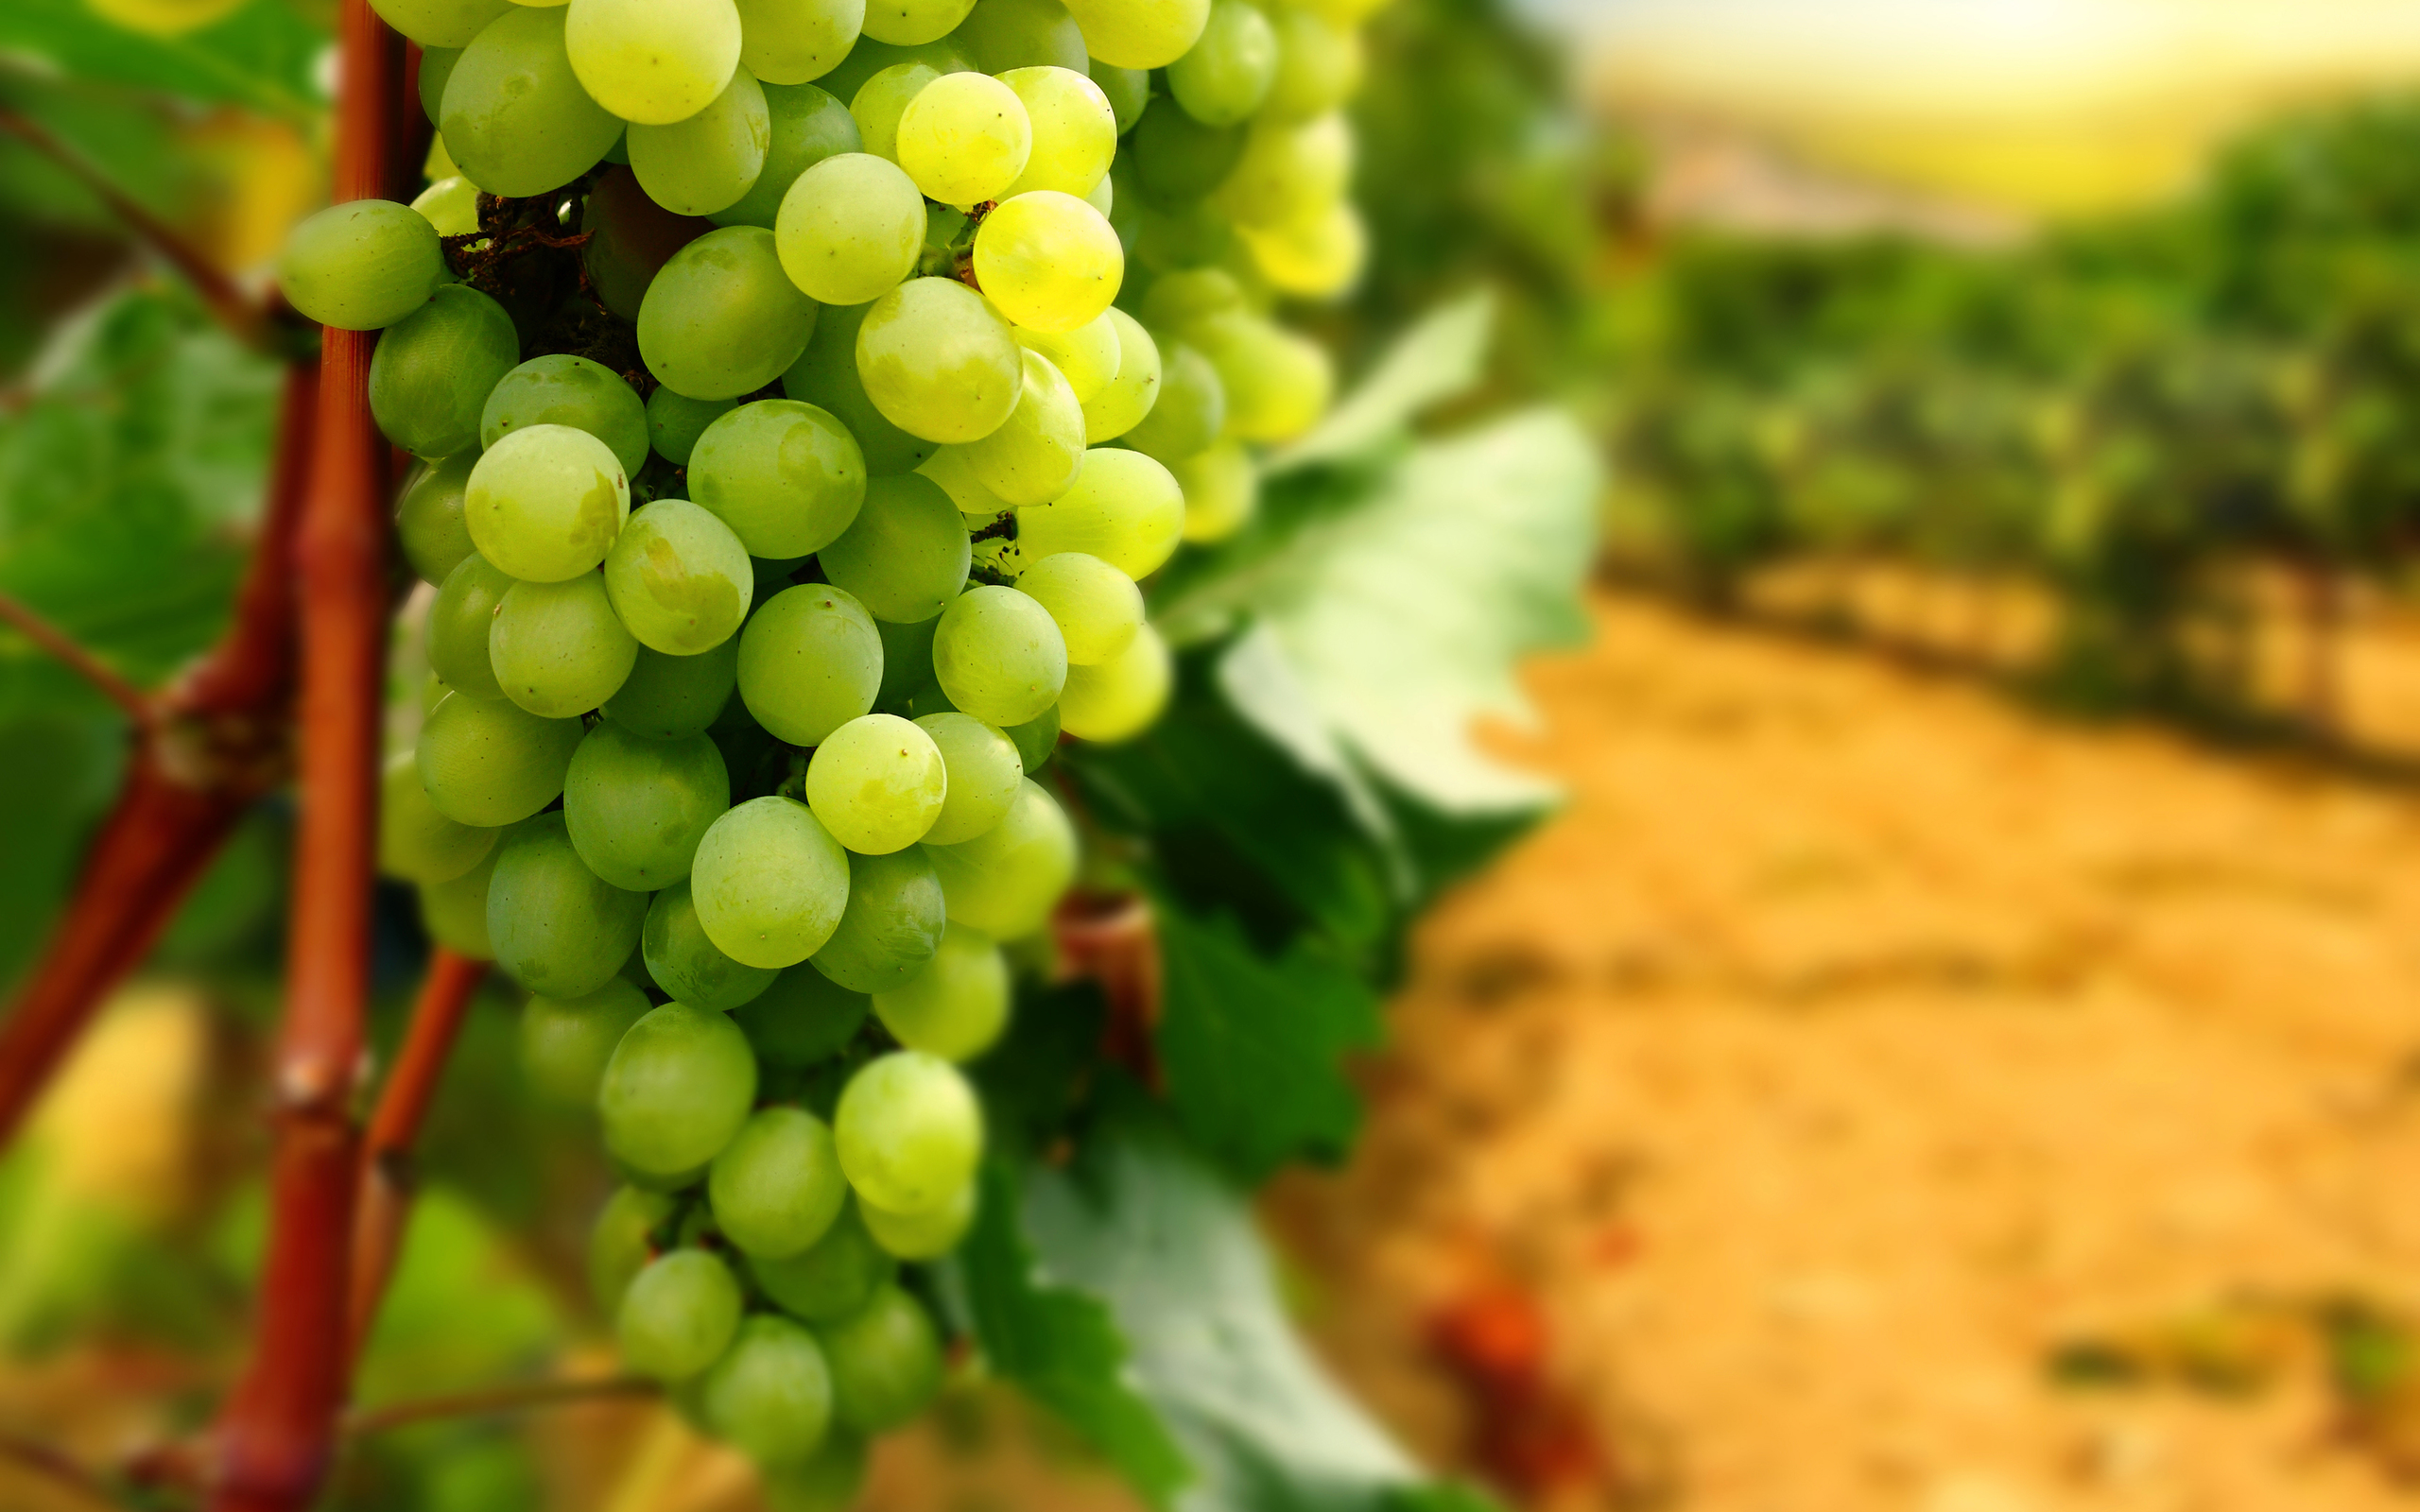 Colorful Food Wallpaper Free Download: Grapes Full HD Wallpaper And Background Image